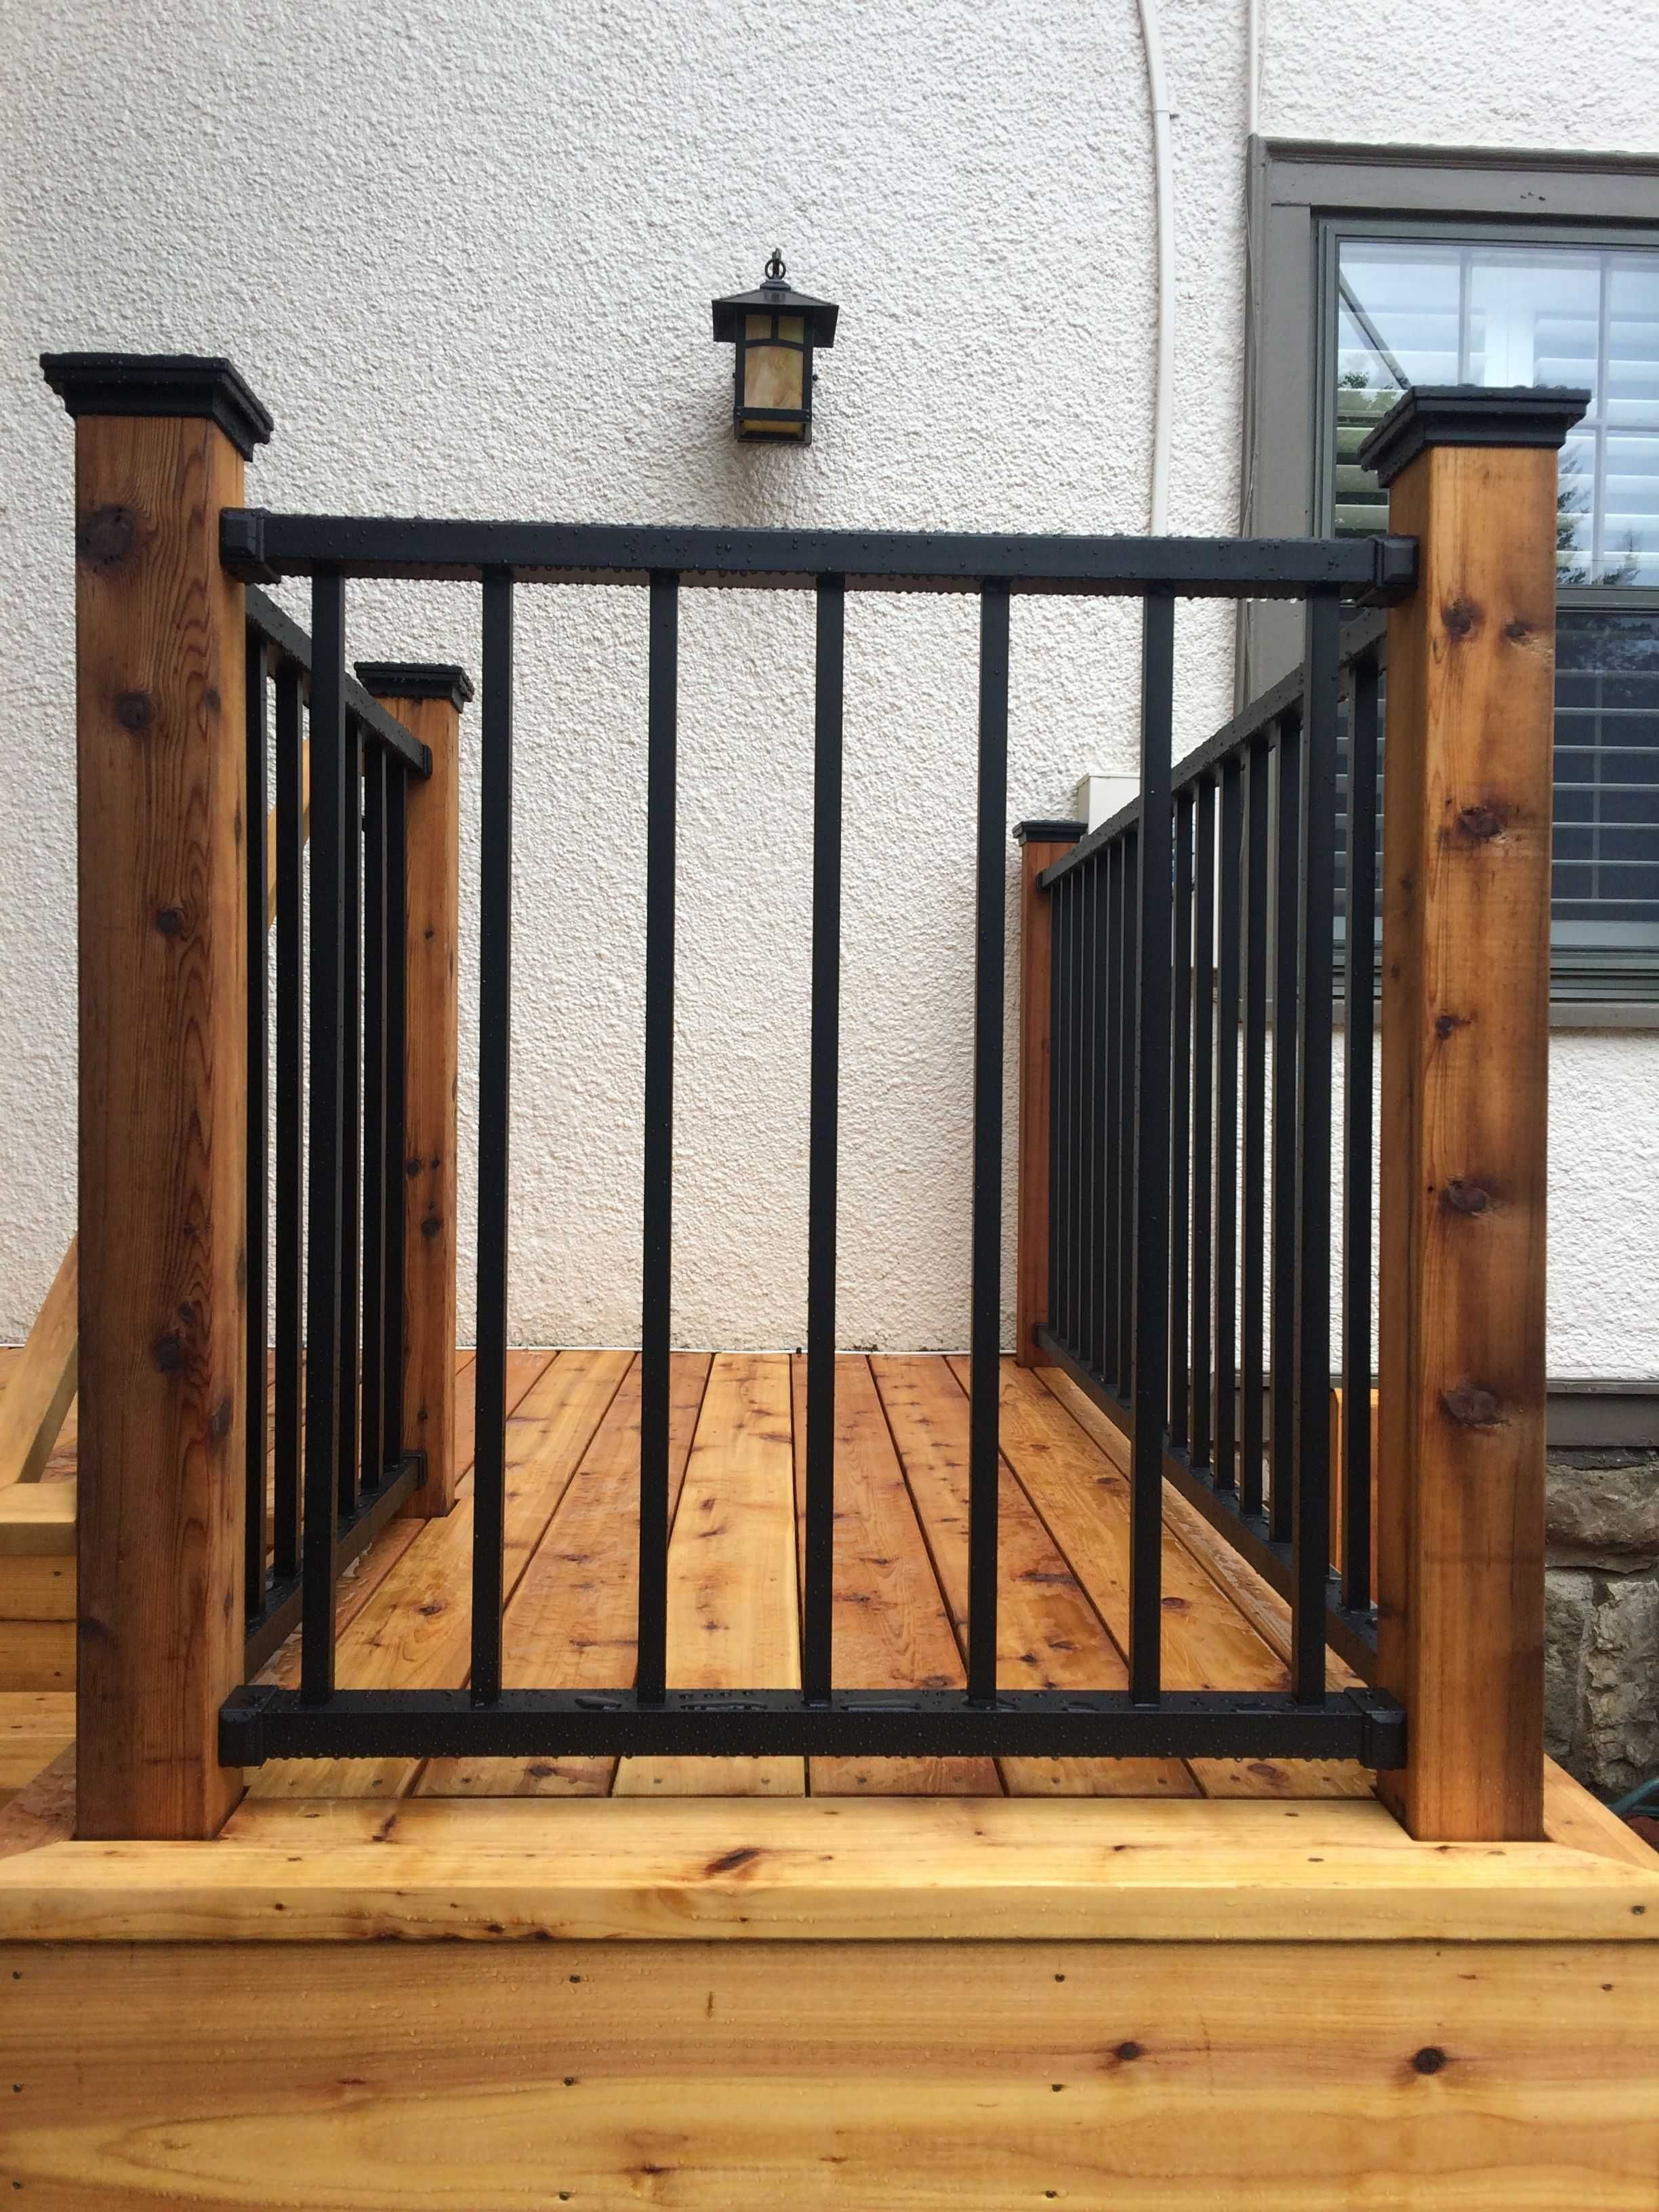 2019 Deck Railing Ideas With Material Option Pros And Cons